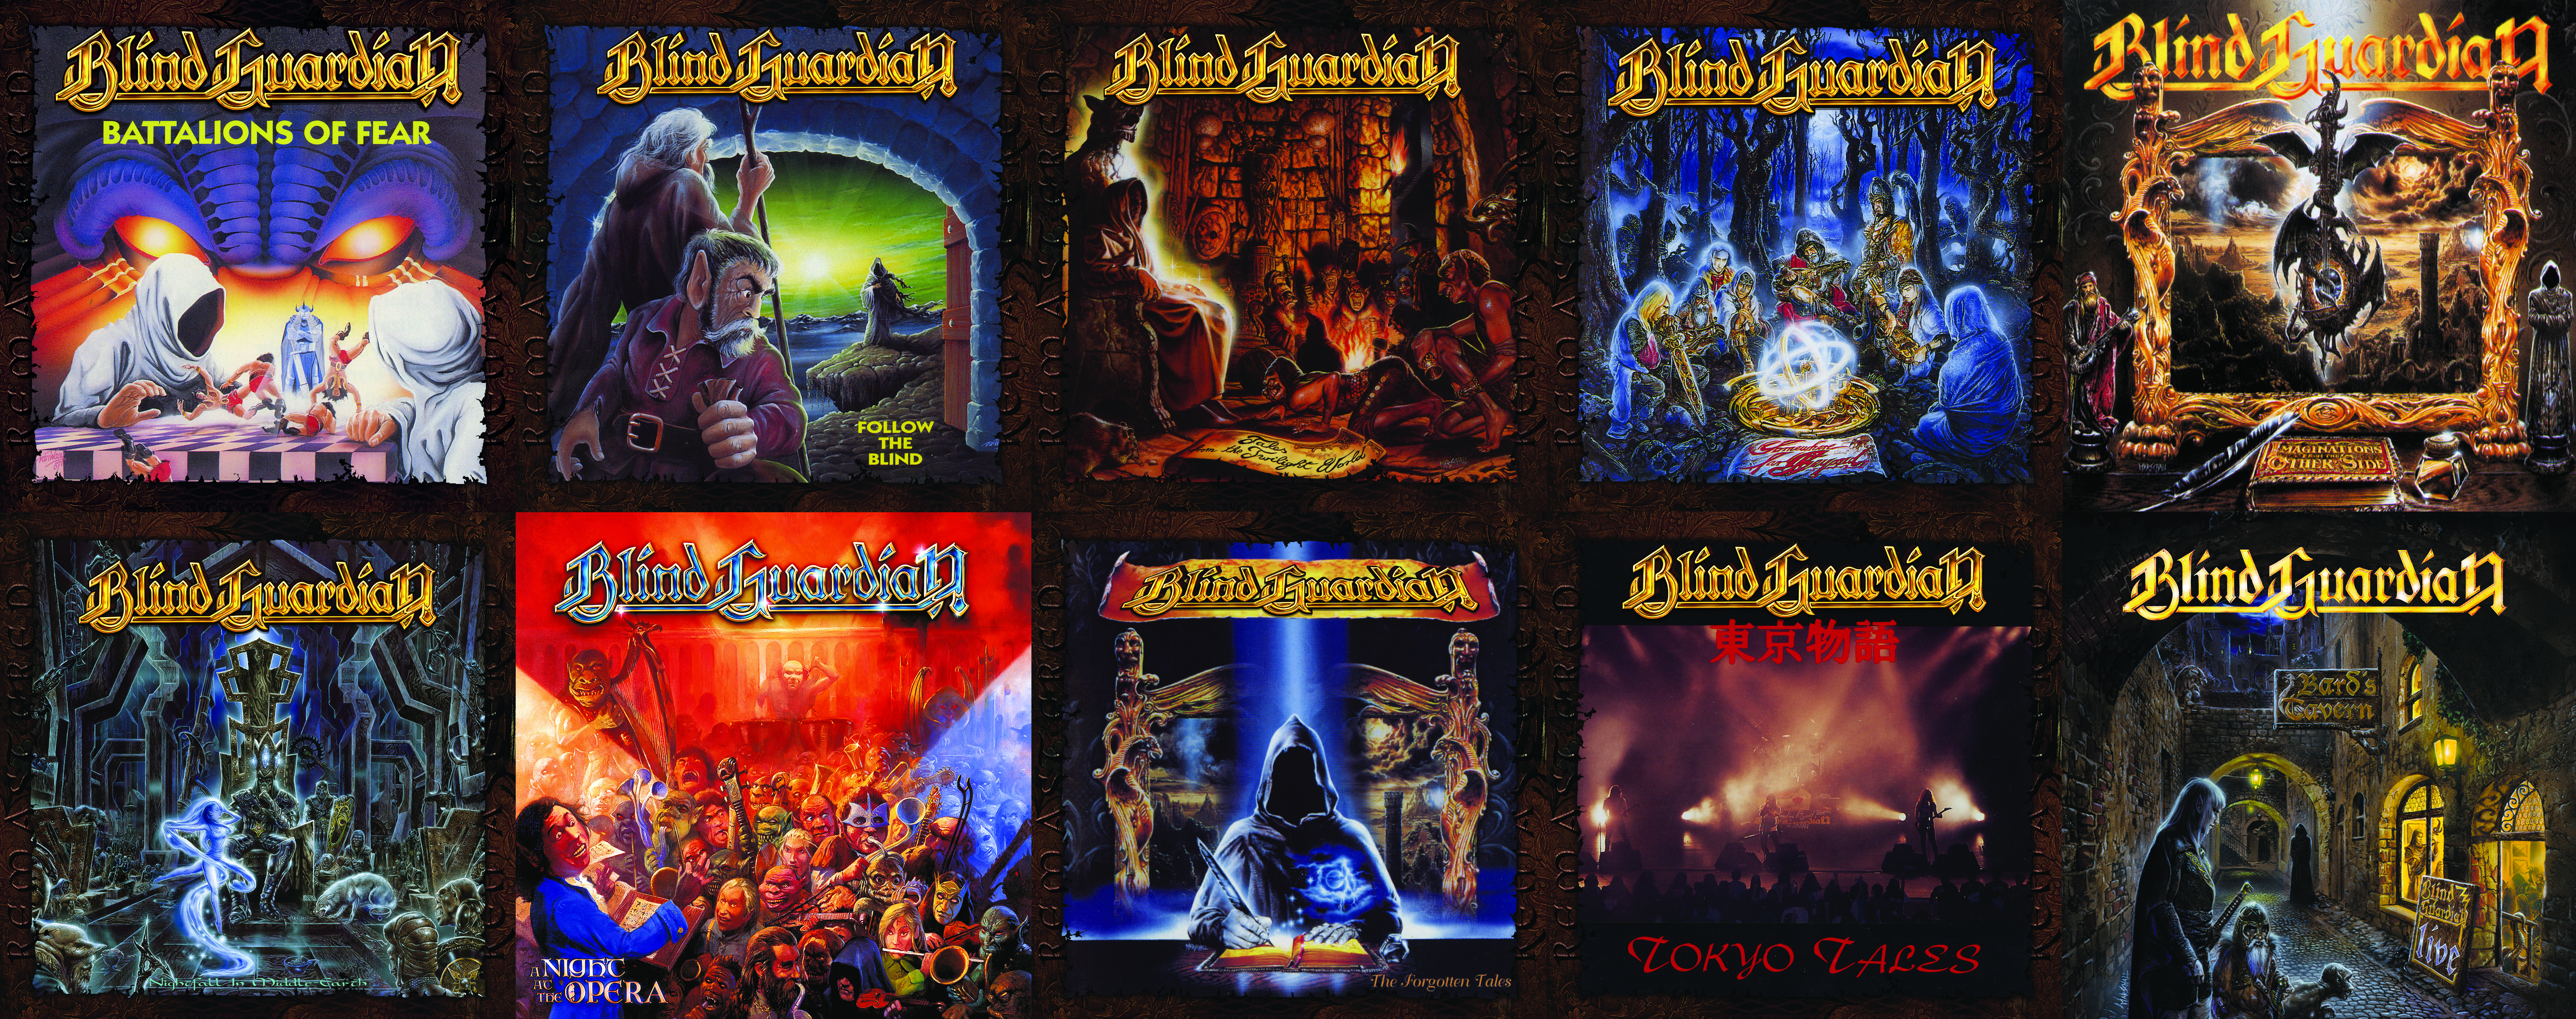 Blind Guardian - Reissues | All About The Rock